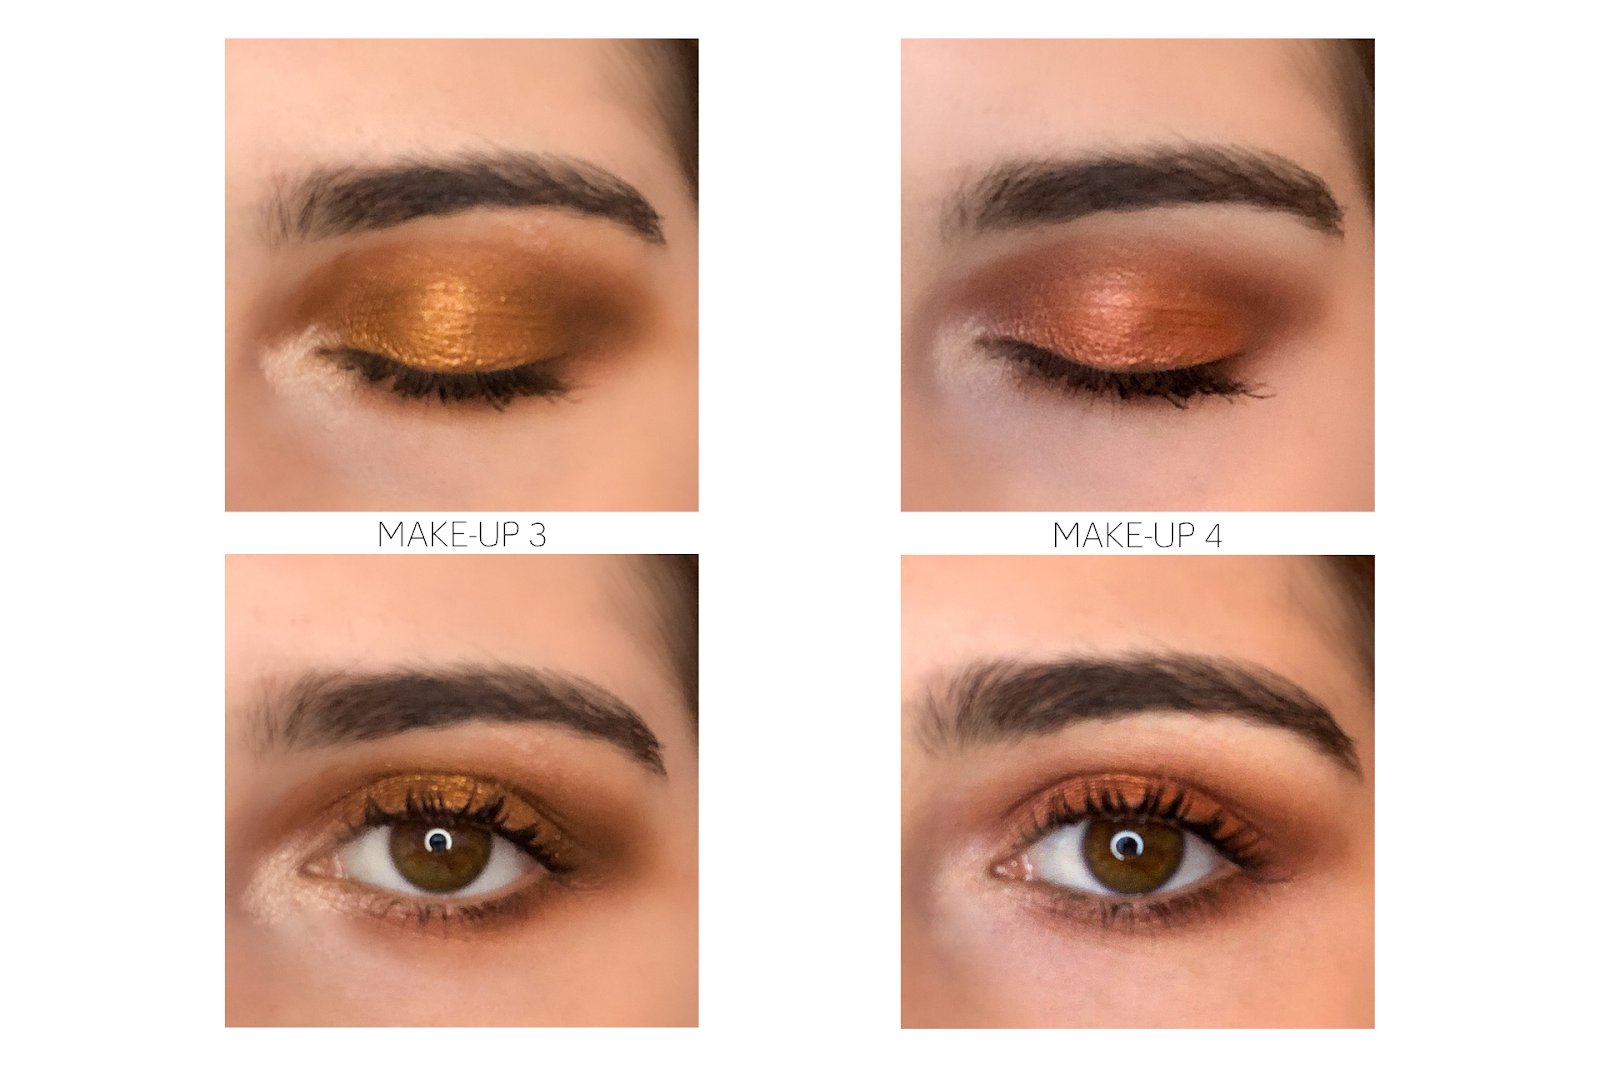 Comment mettre en valeur son regard ? Make-up - ô magazine